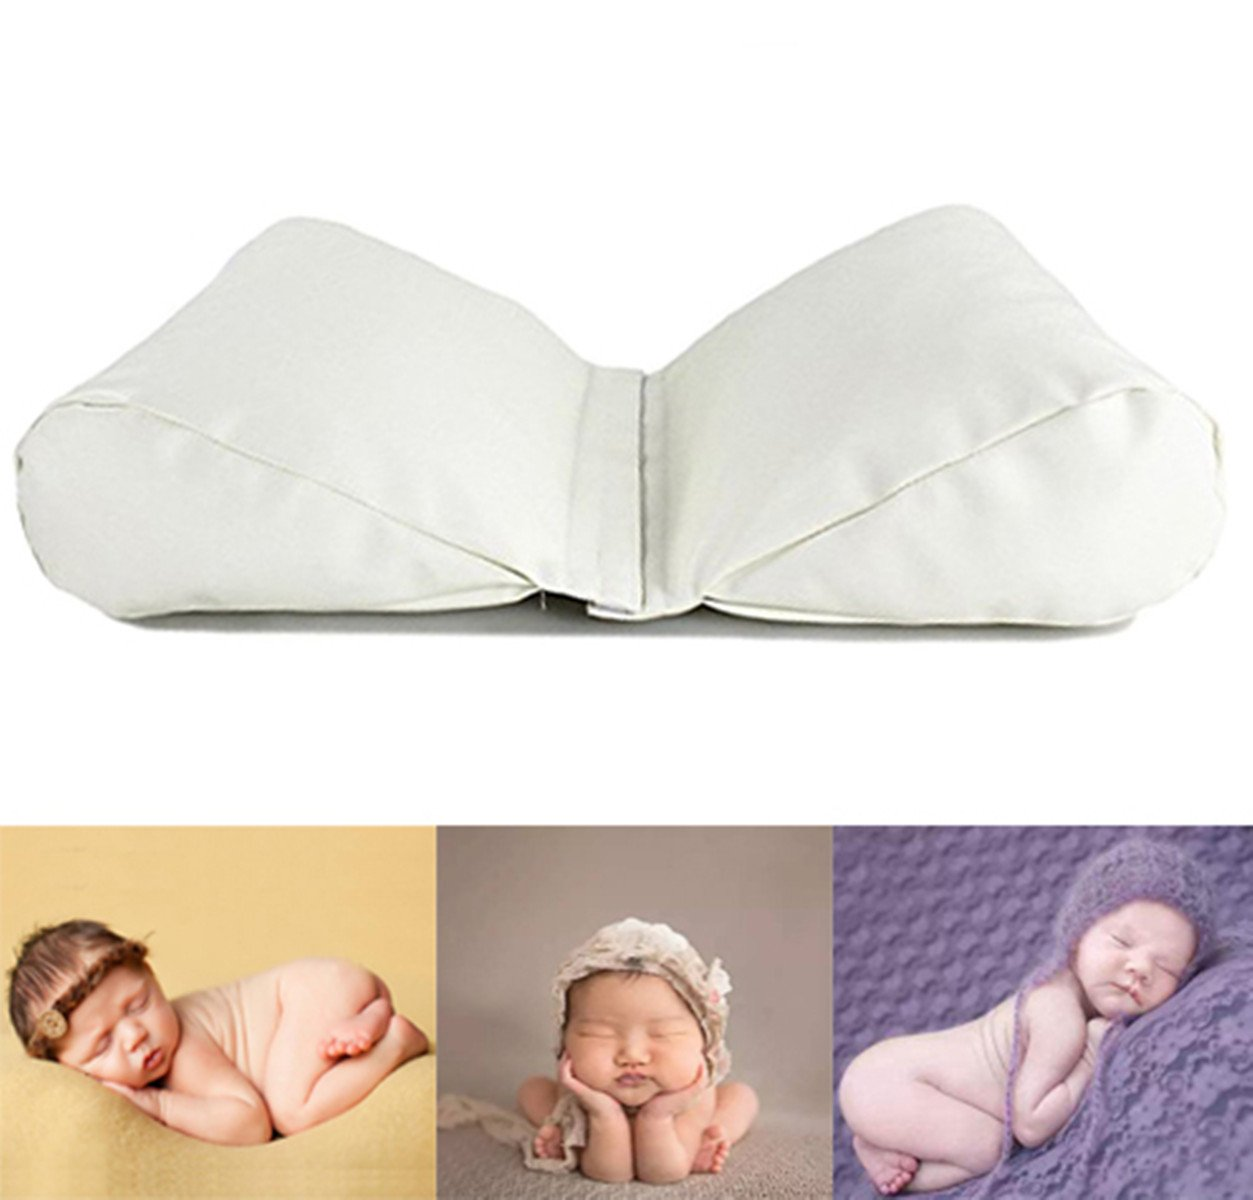 M& G House Newborn Photography Butterfly Posing Pillow Basket Filler Wheat Baby Photo Prop 2 PC White mg